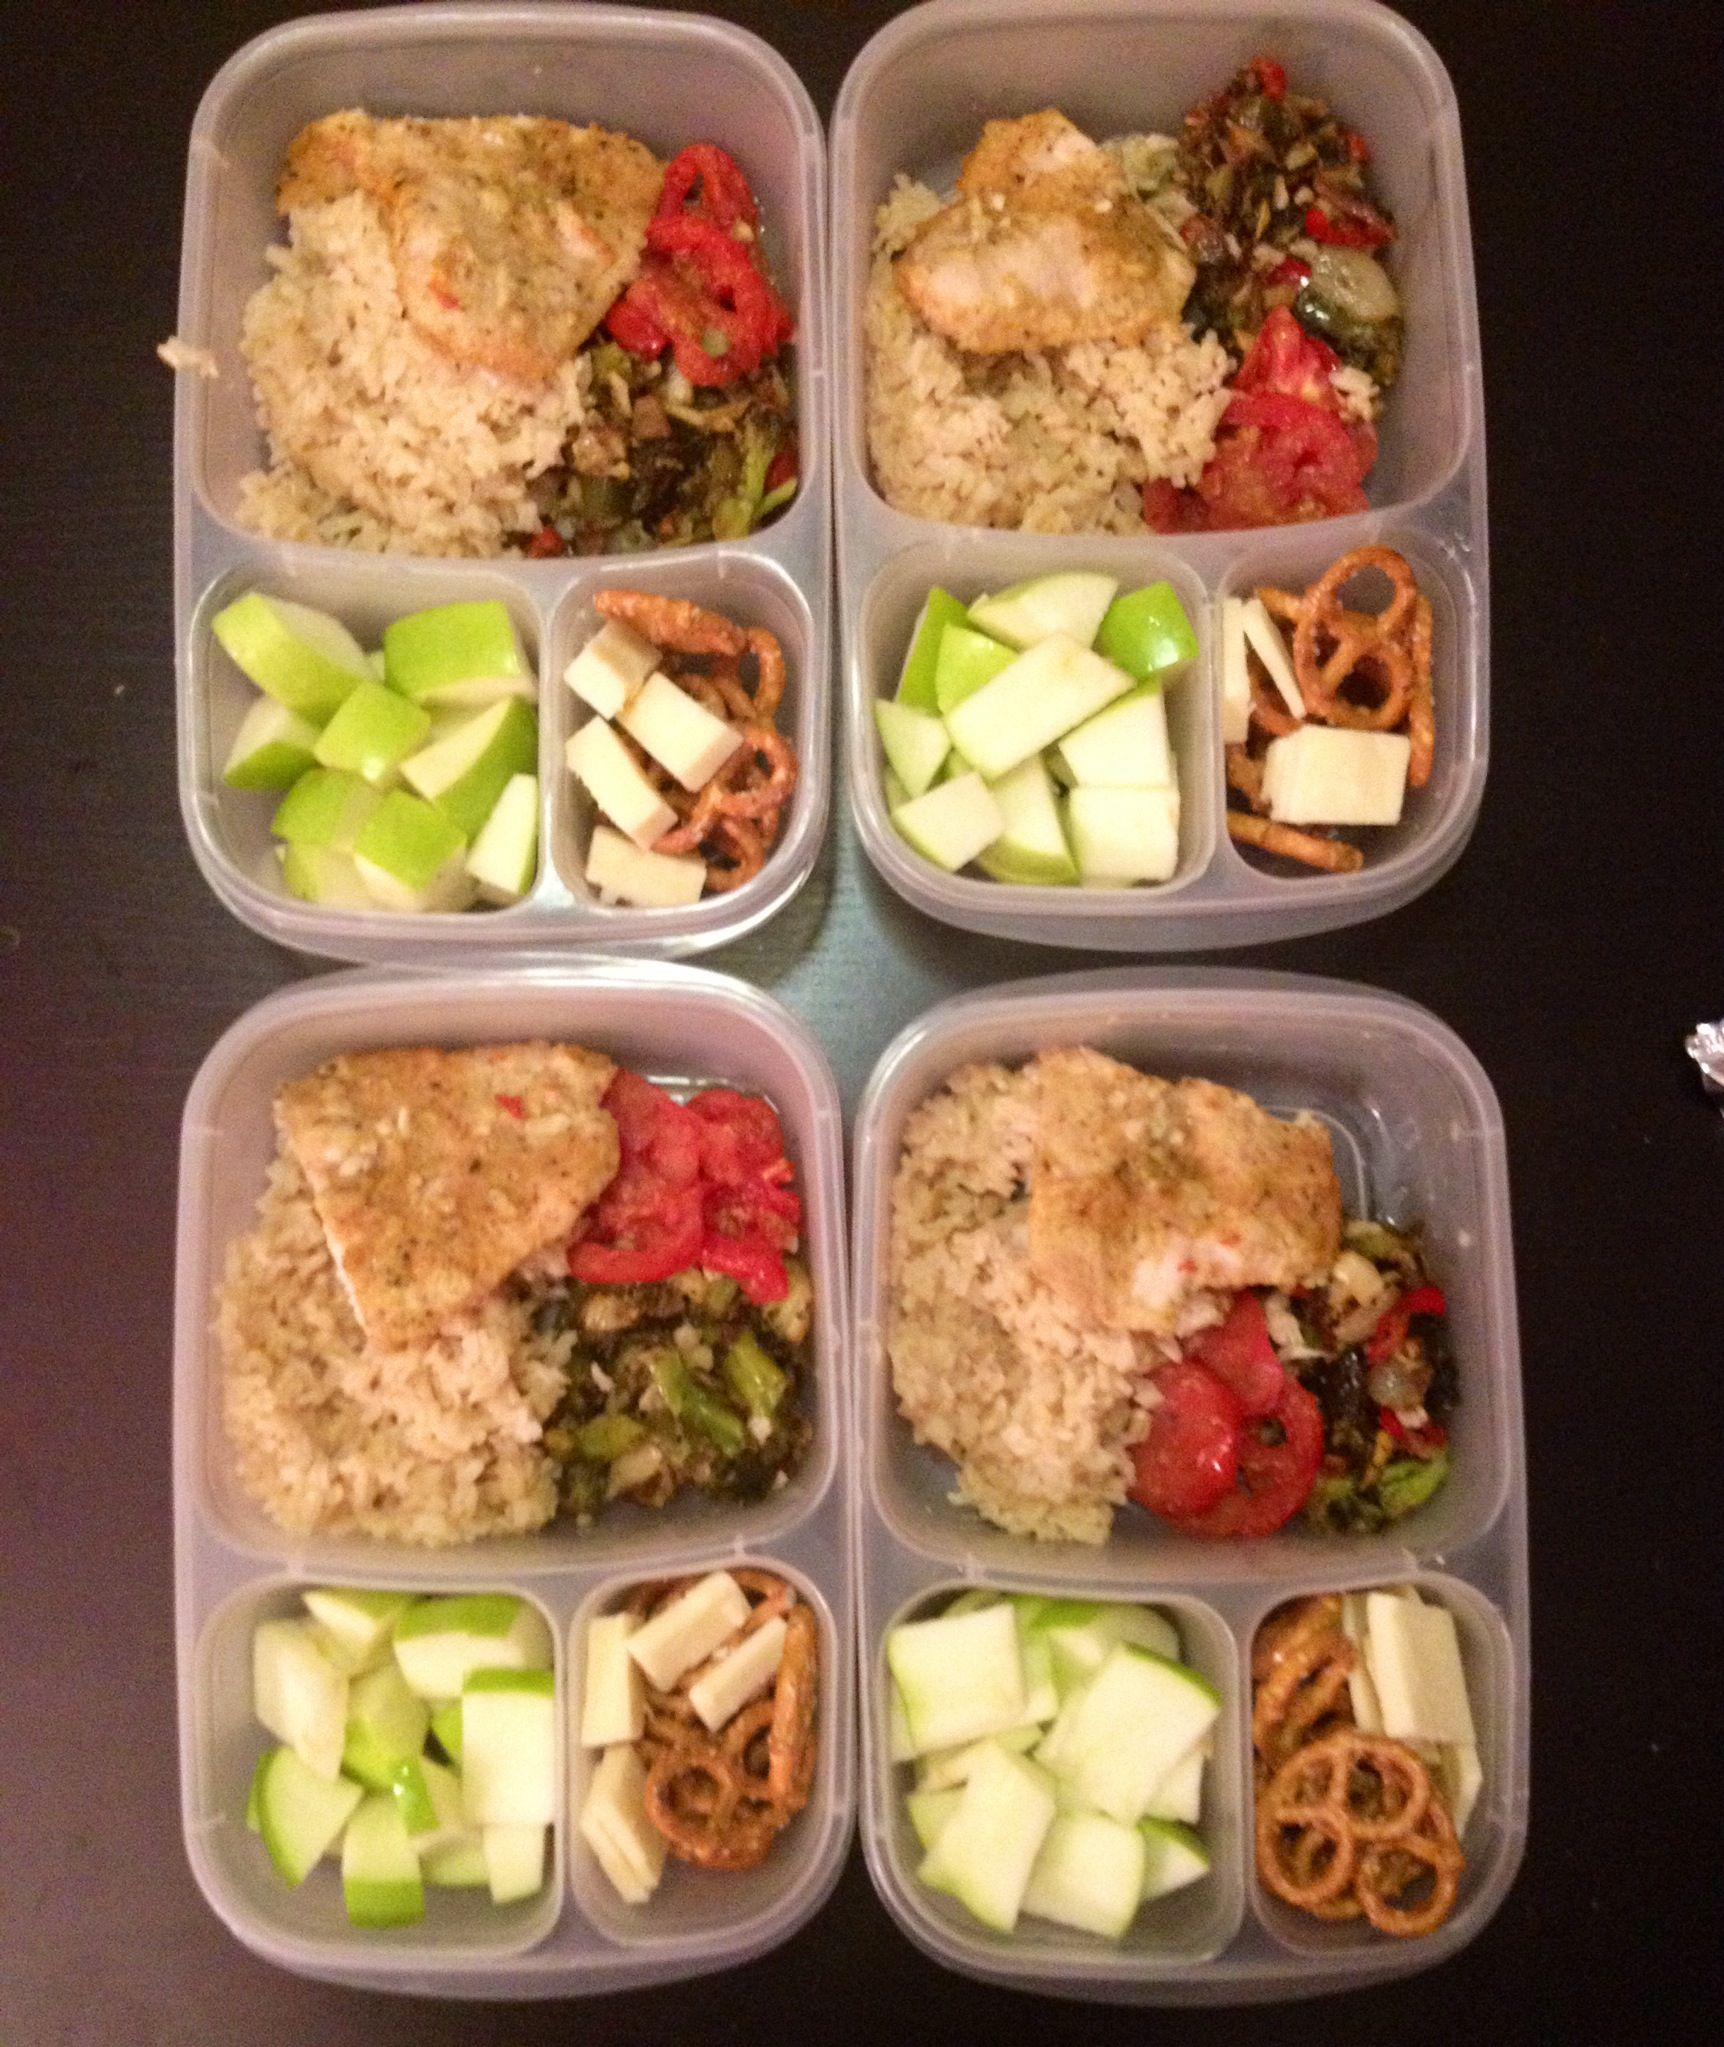 Weight loss hcg diet plan picture 10